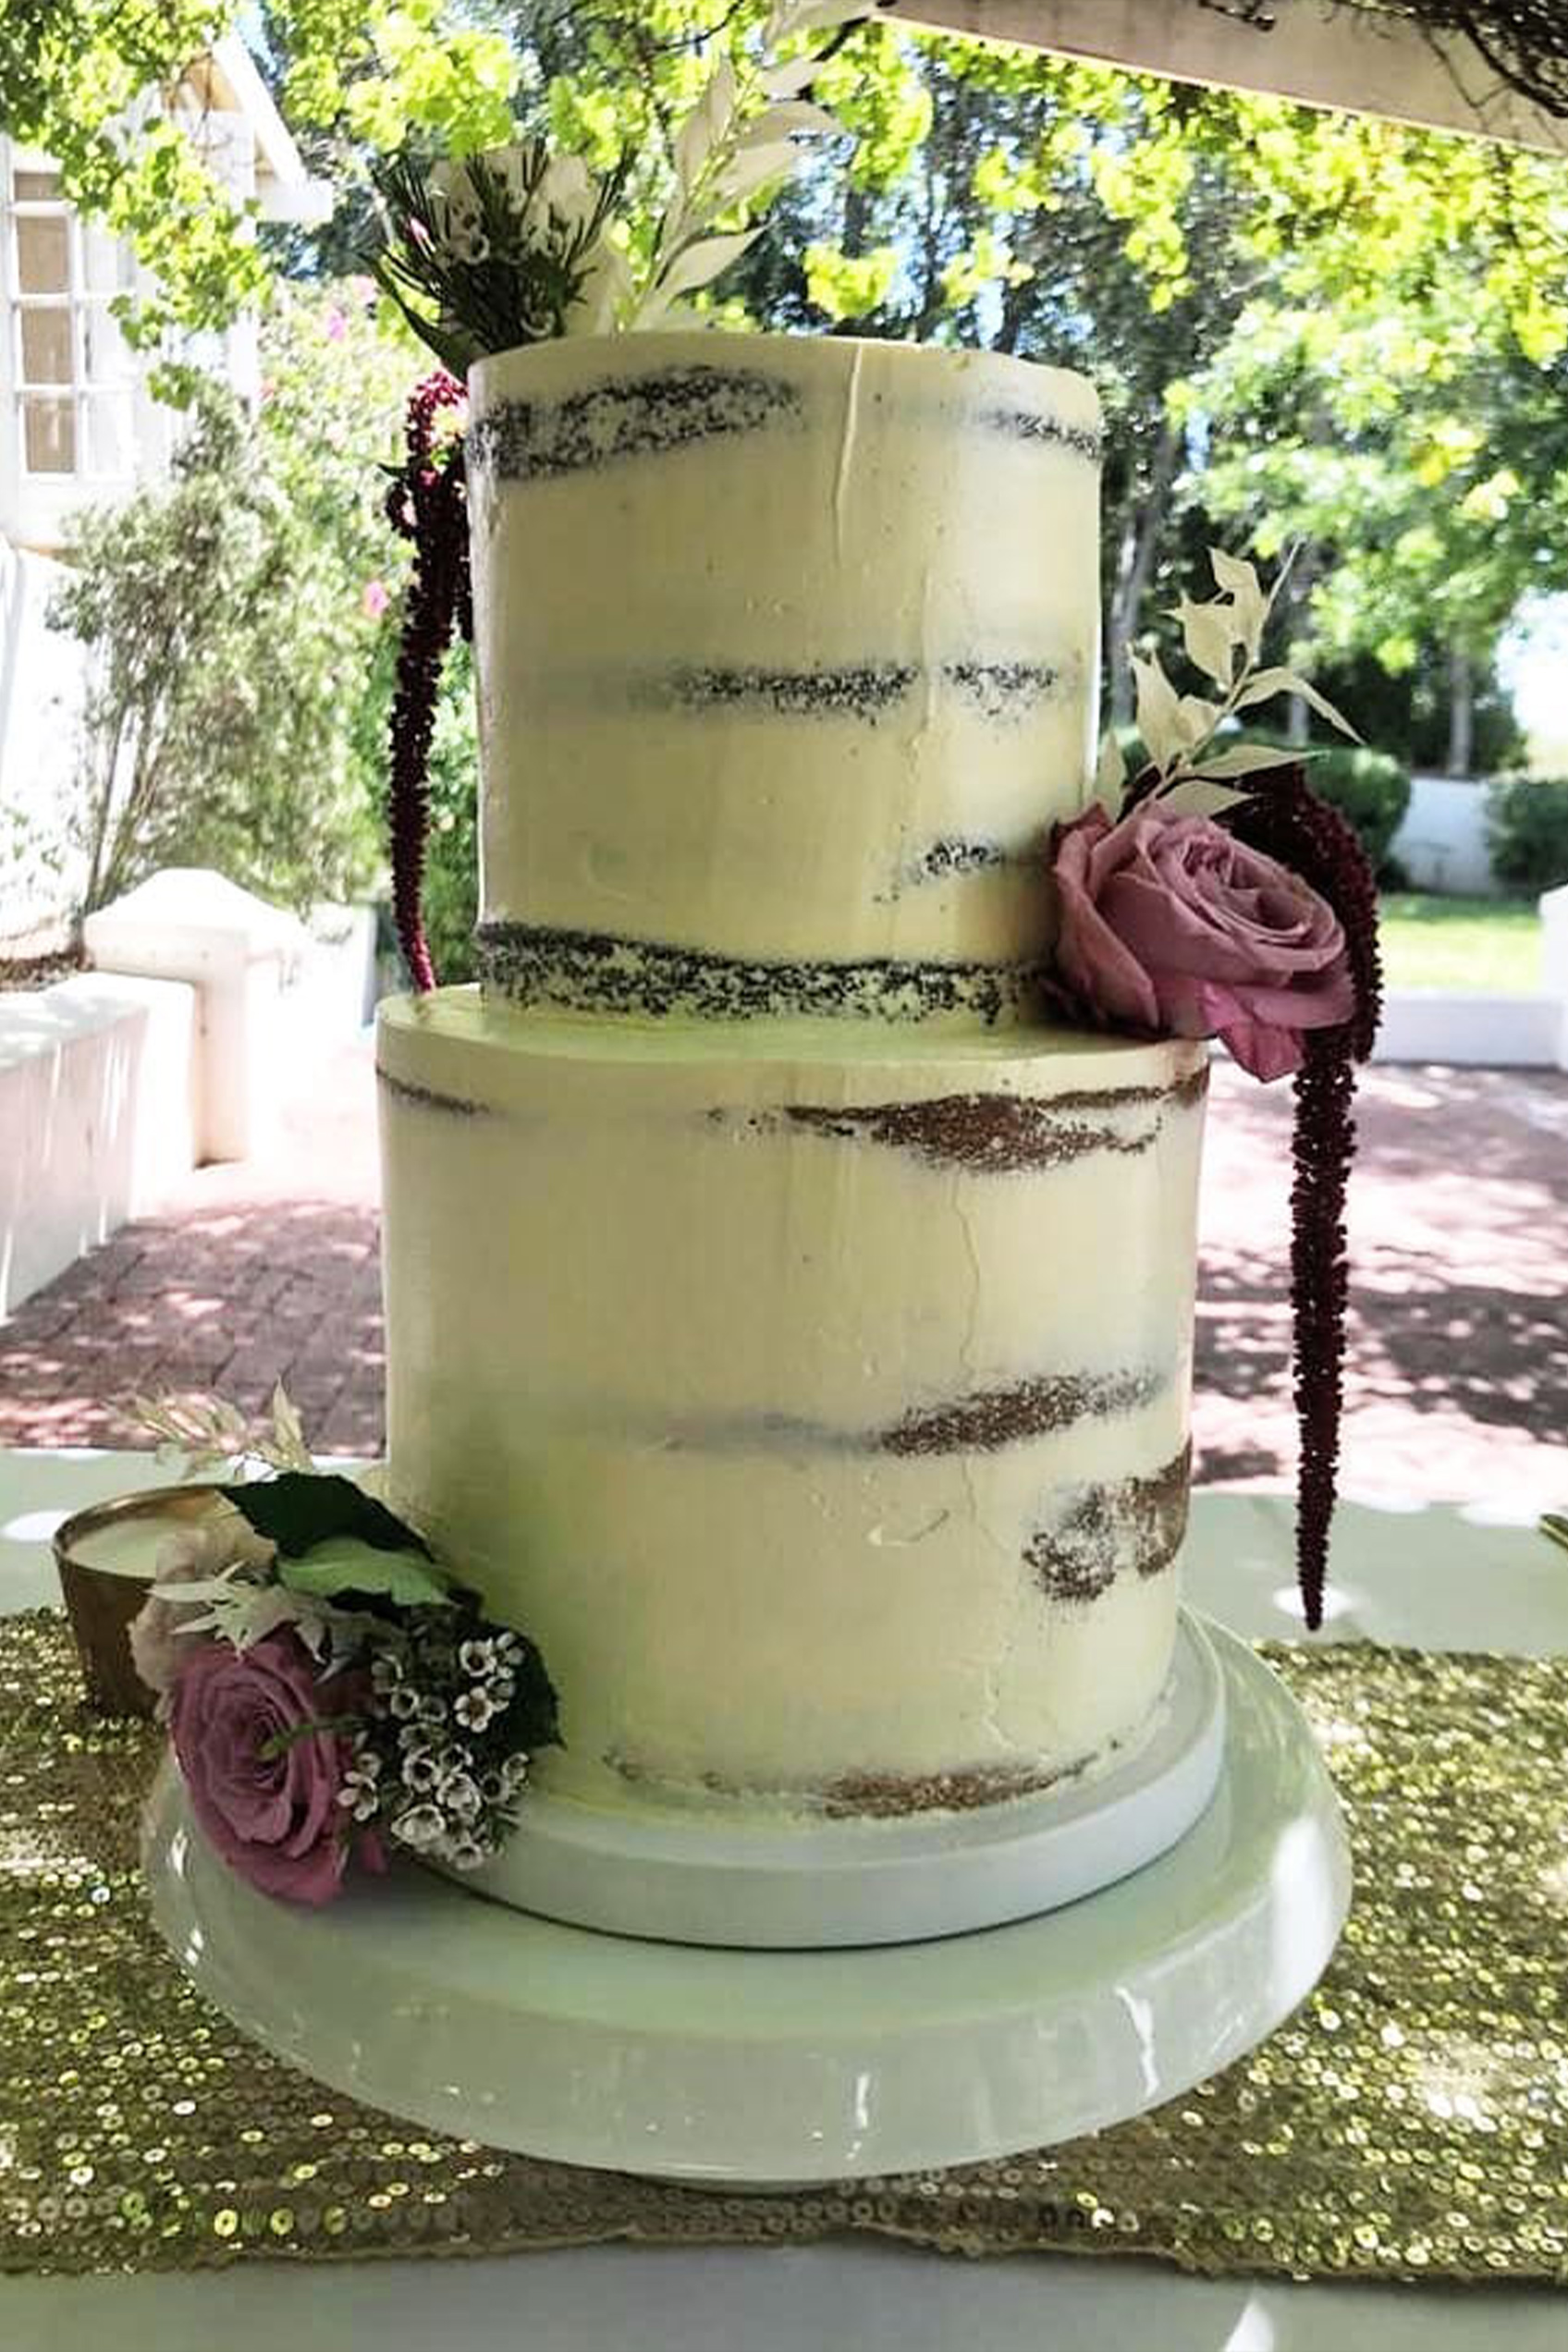 All Your Cake - Cakes & Desserts Paarl